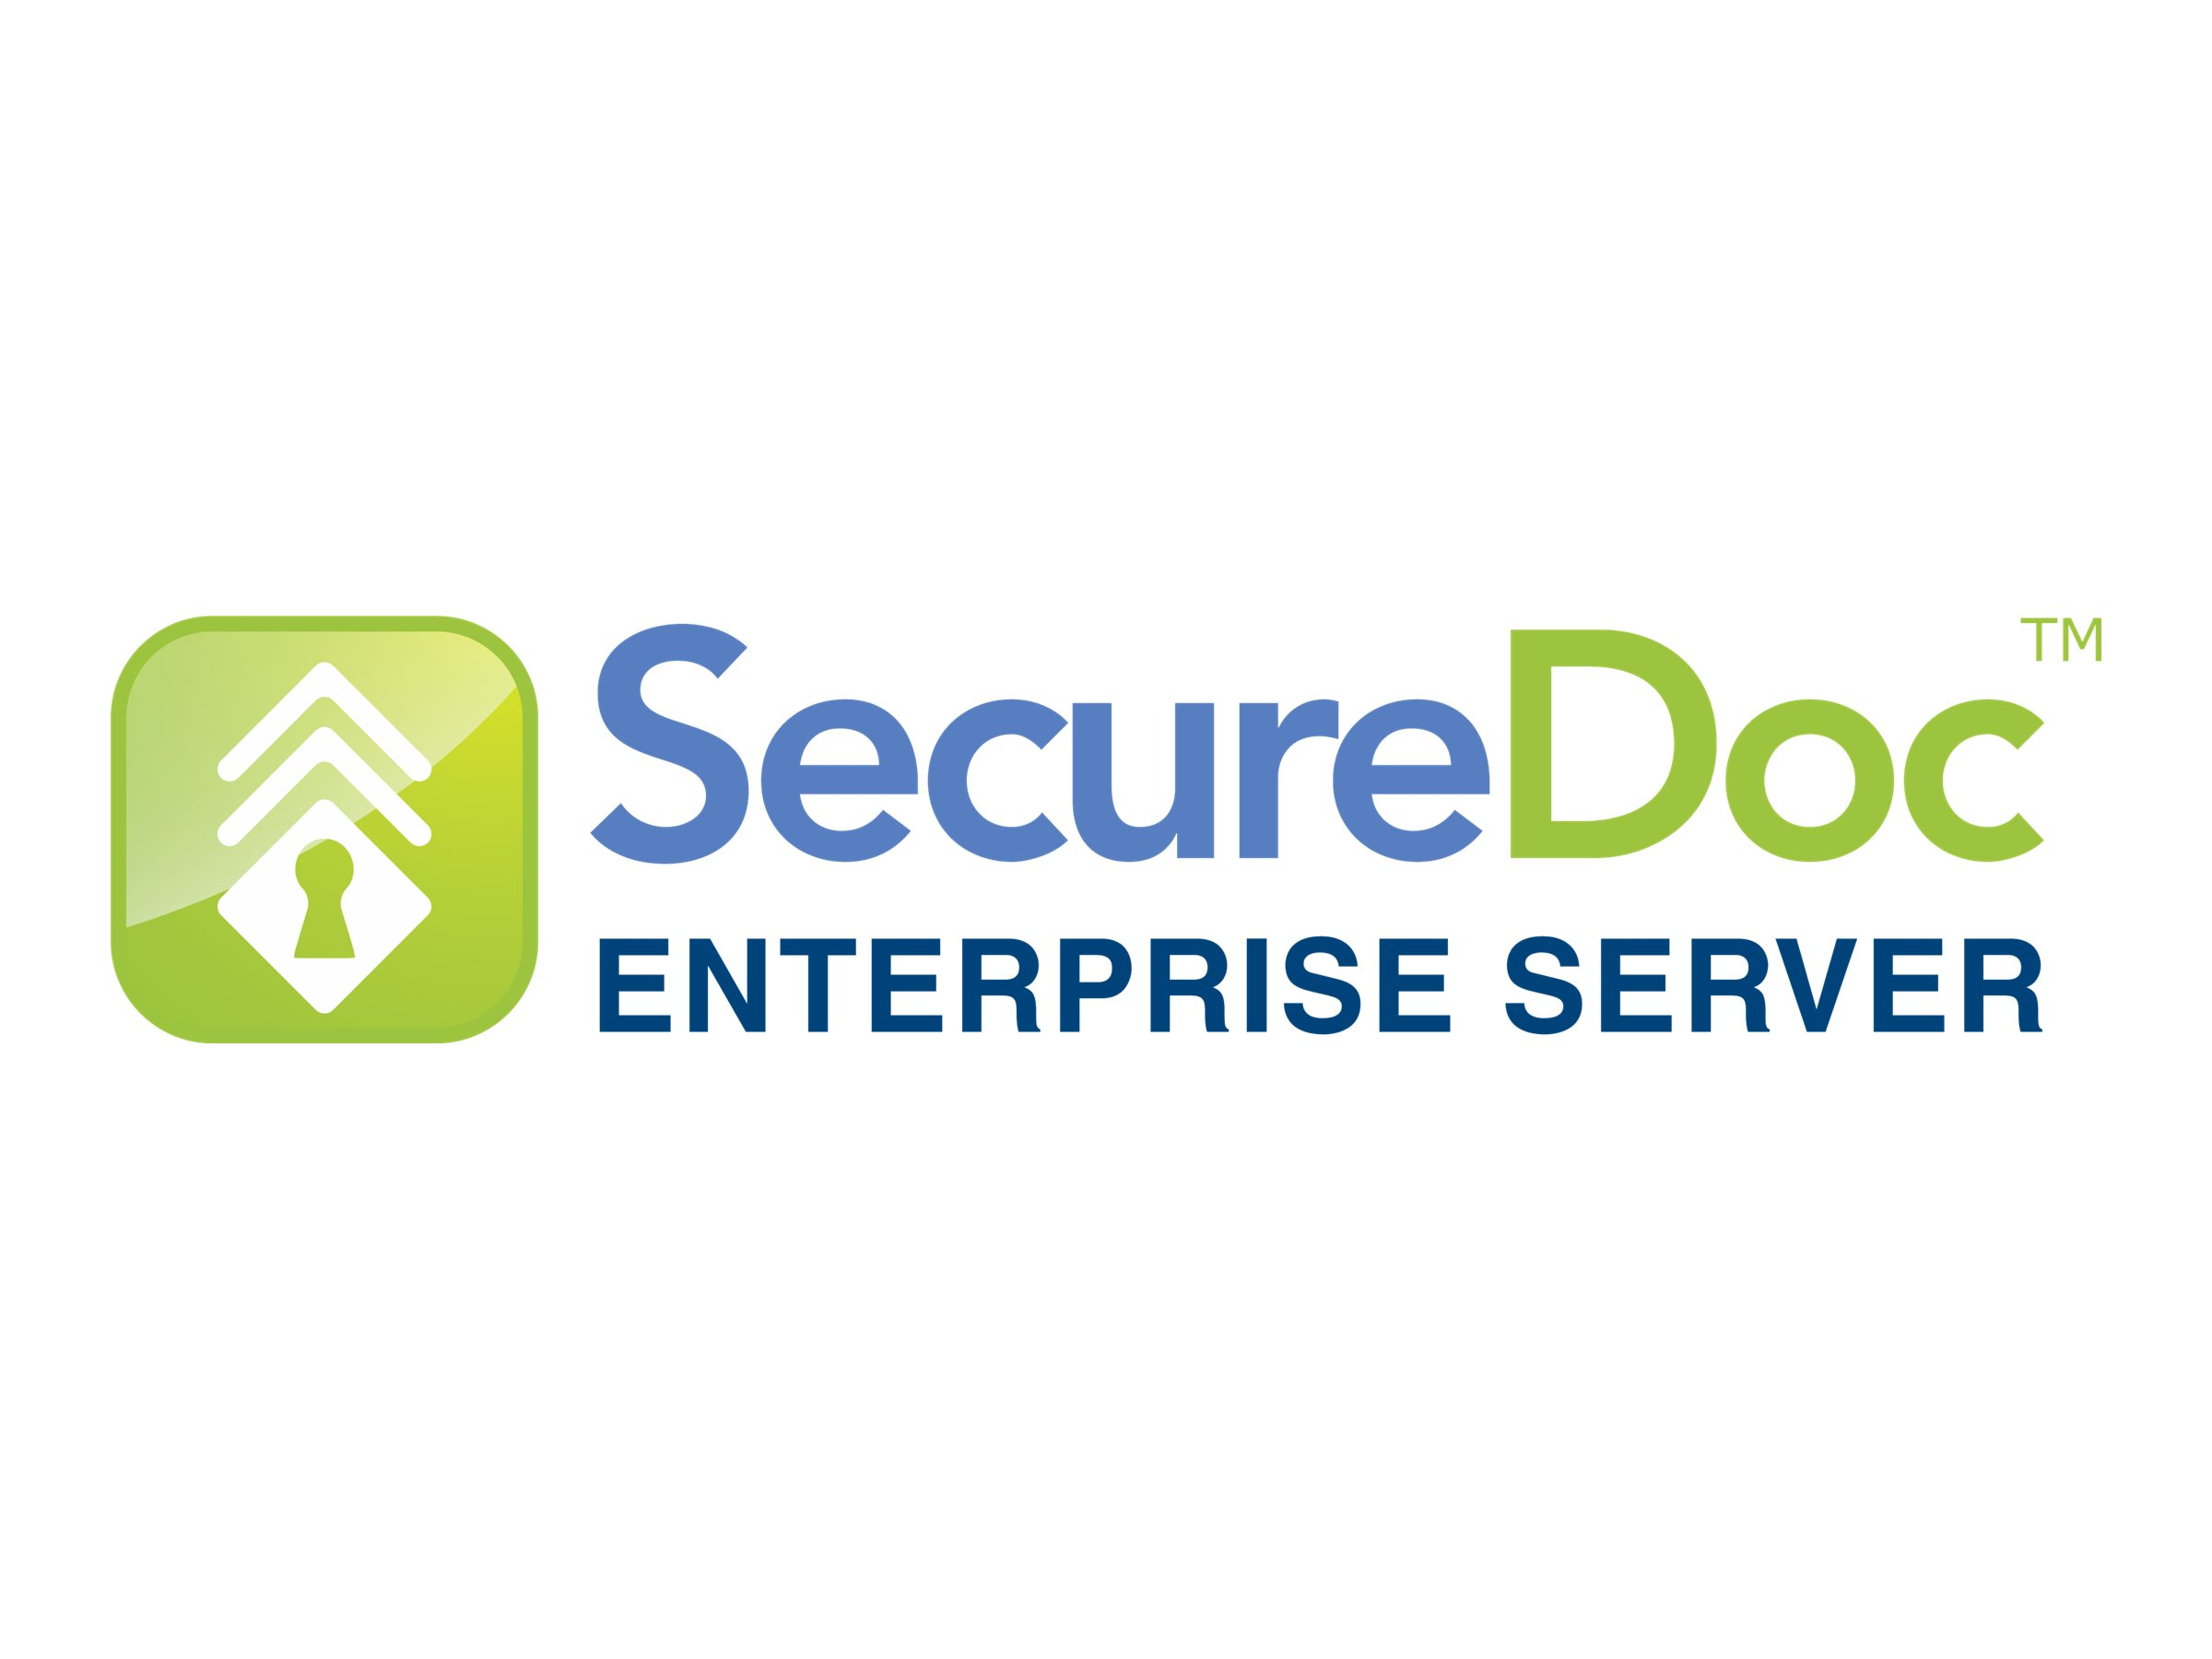 SecureDoc Enterprise Server - license + 3 Years 24x7 Support - 1 license